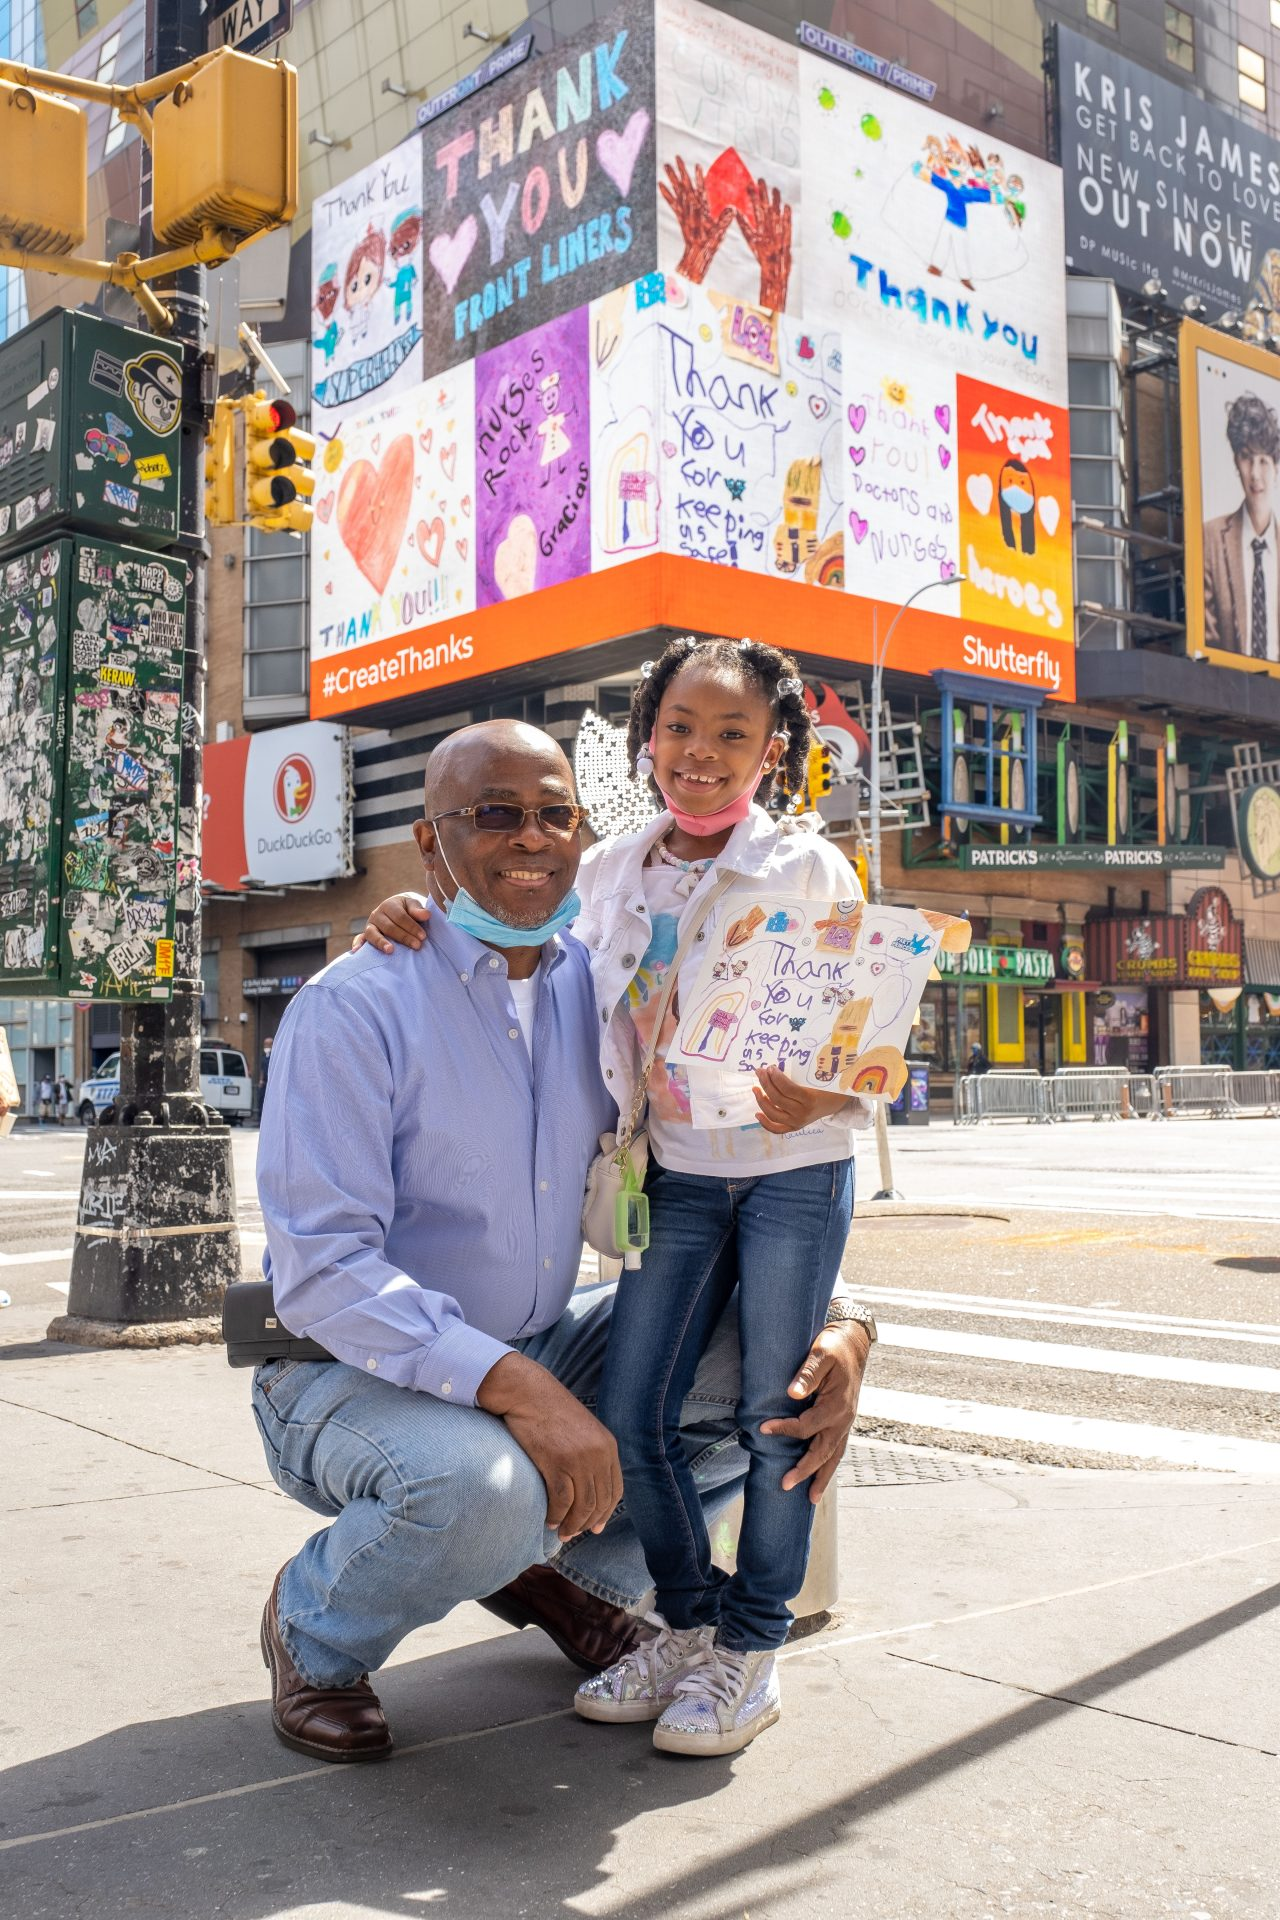 Shutterfly surprises LI kids with NYC billboard of their art for essential workers